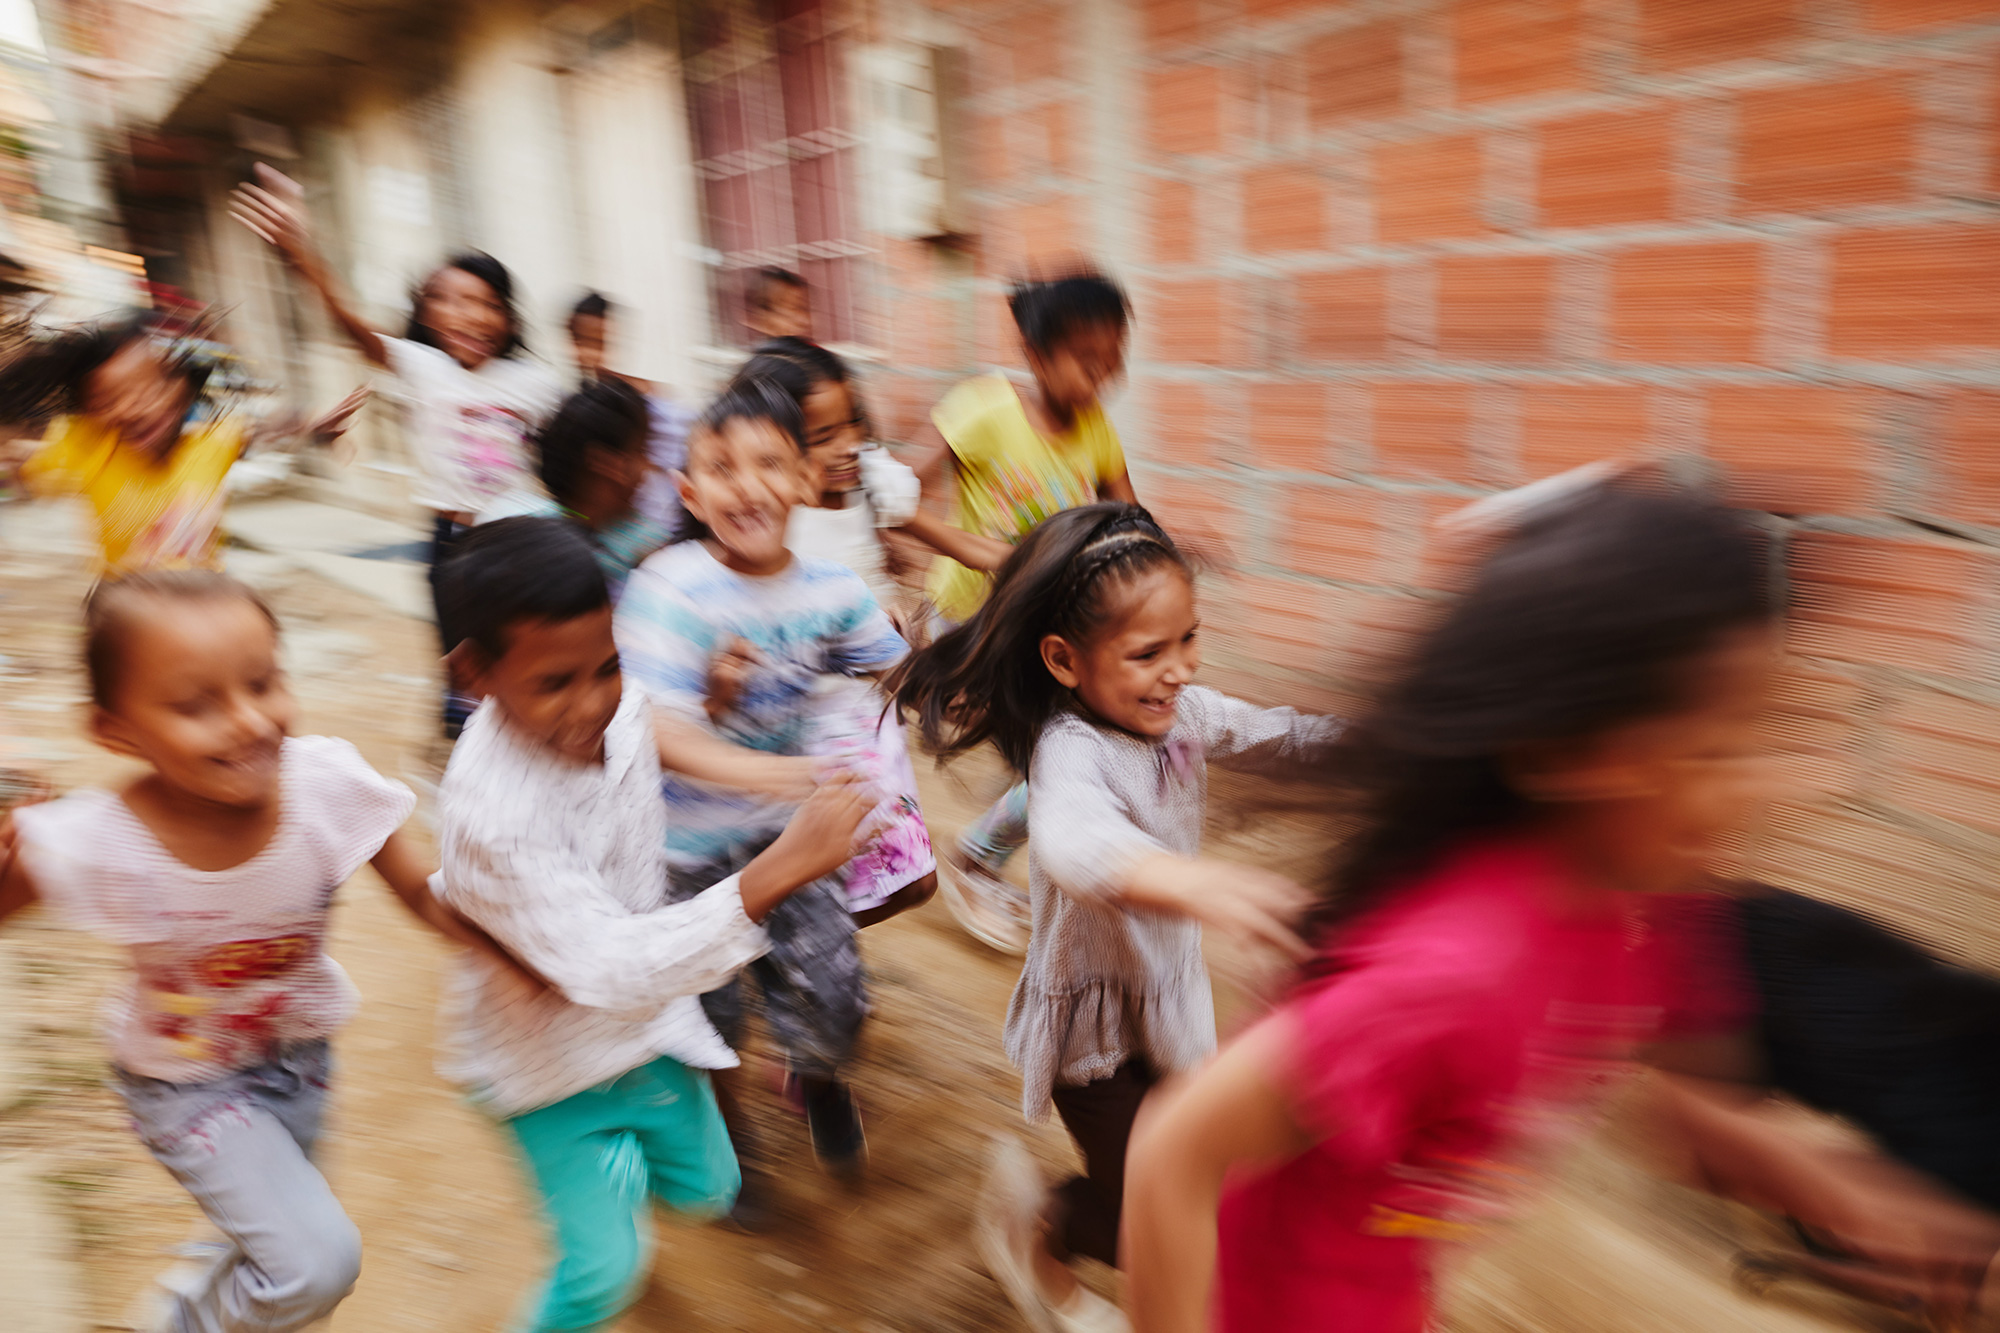 A group of children run in Colombia